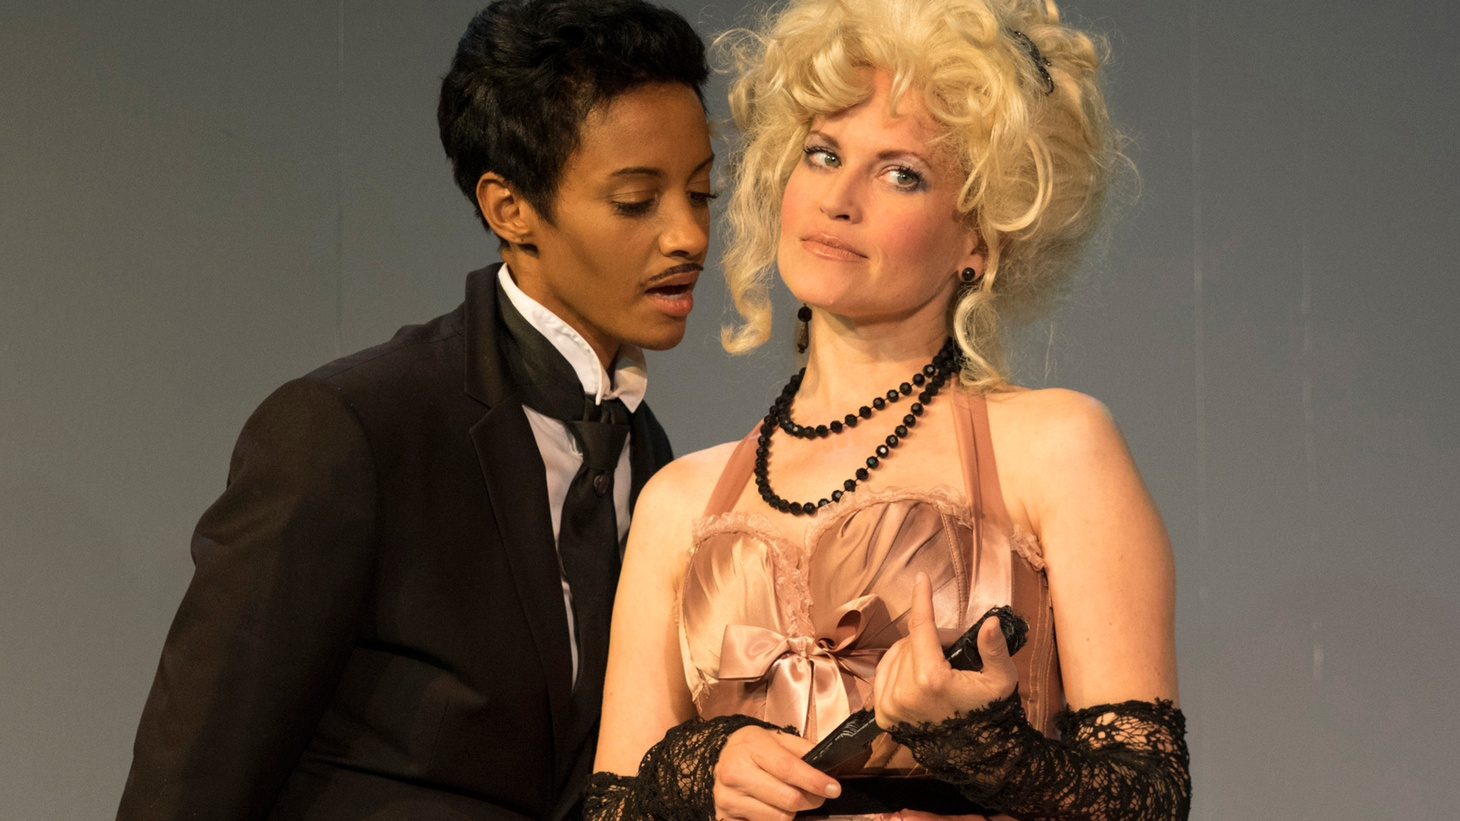 At its core, The False Servant is a Commedia-inspired, biting romantic comedy with a cross-dresser as a catalyst.